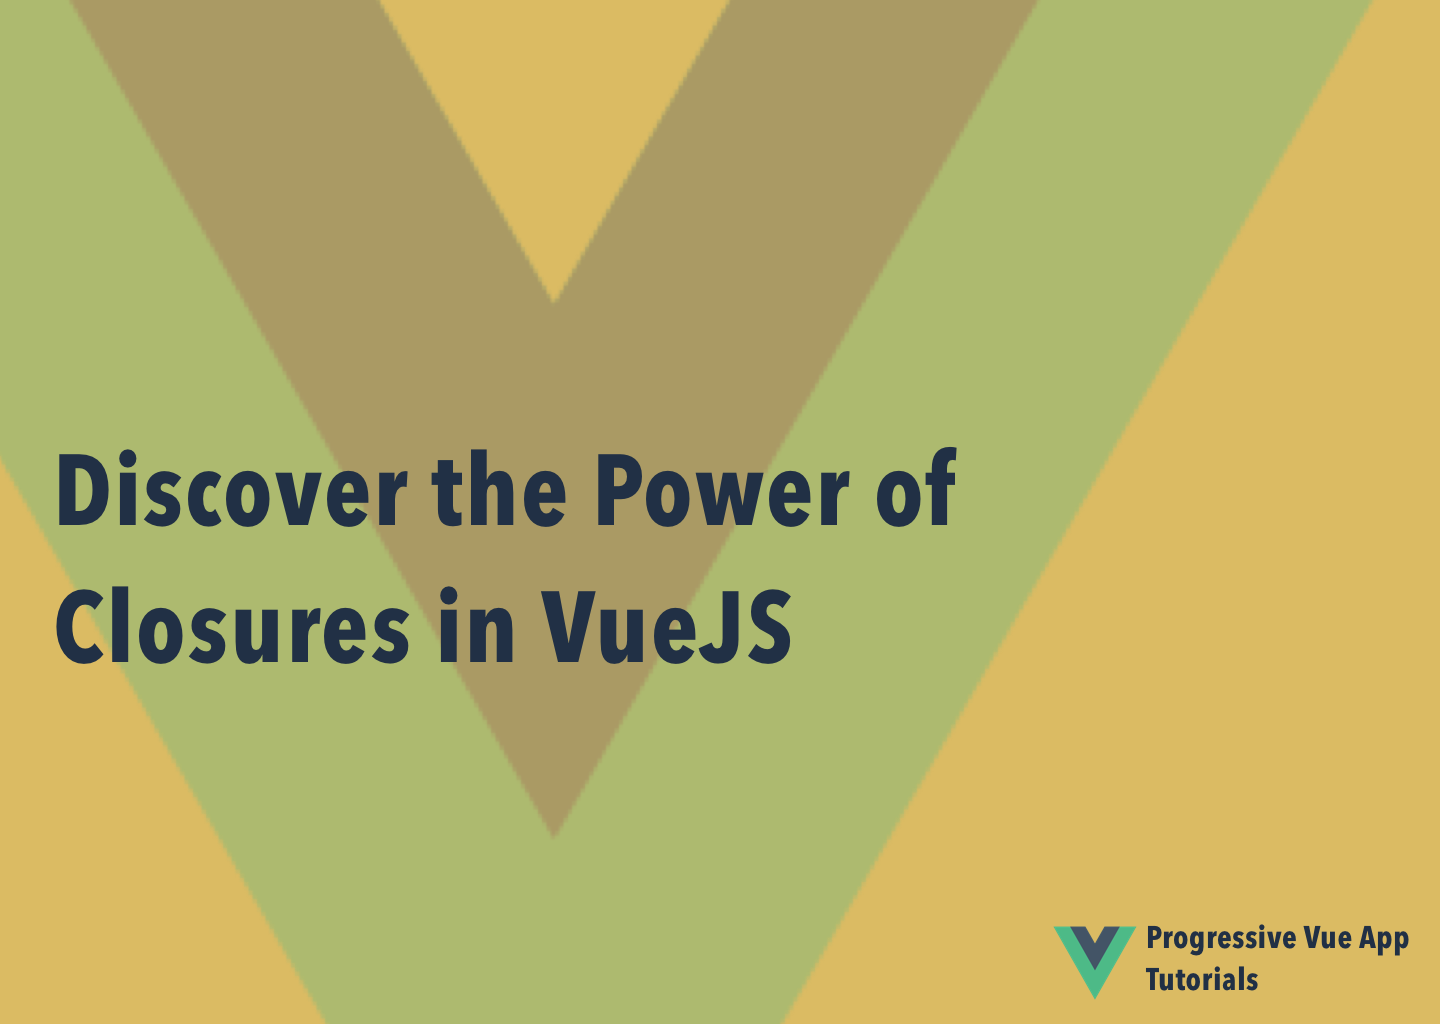 Discover the power of closures in VueJS